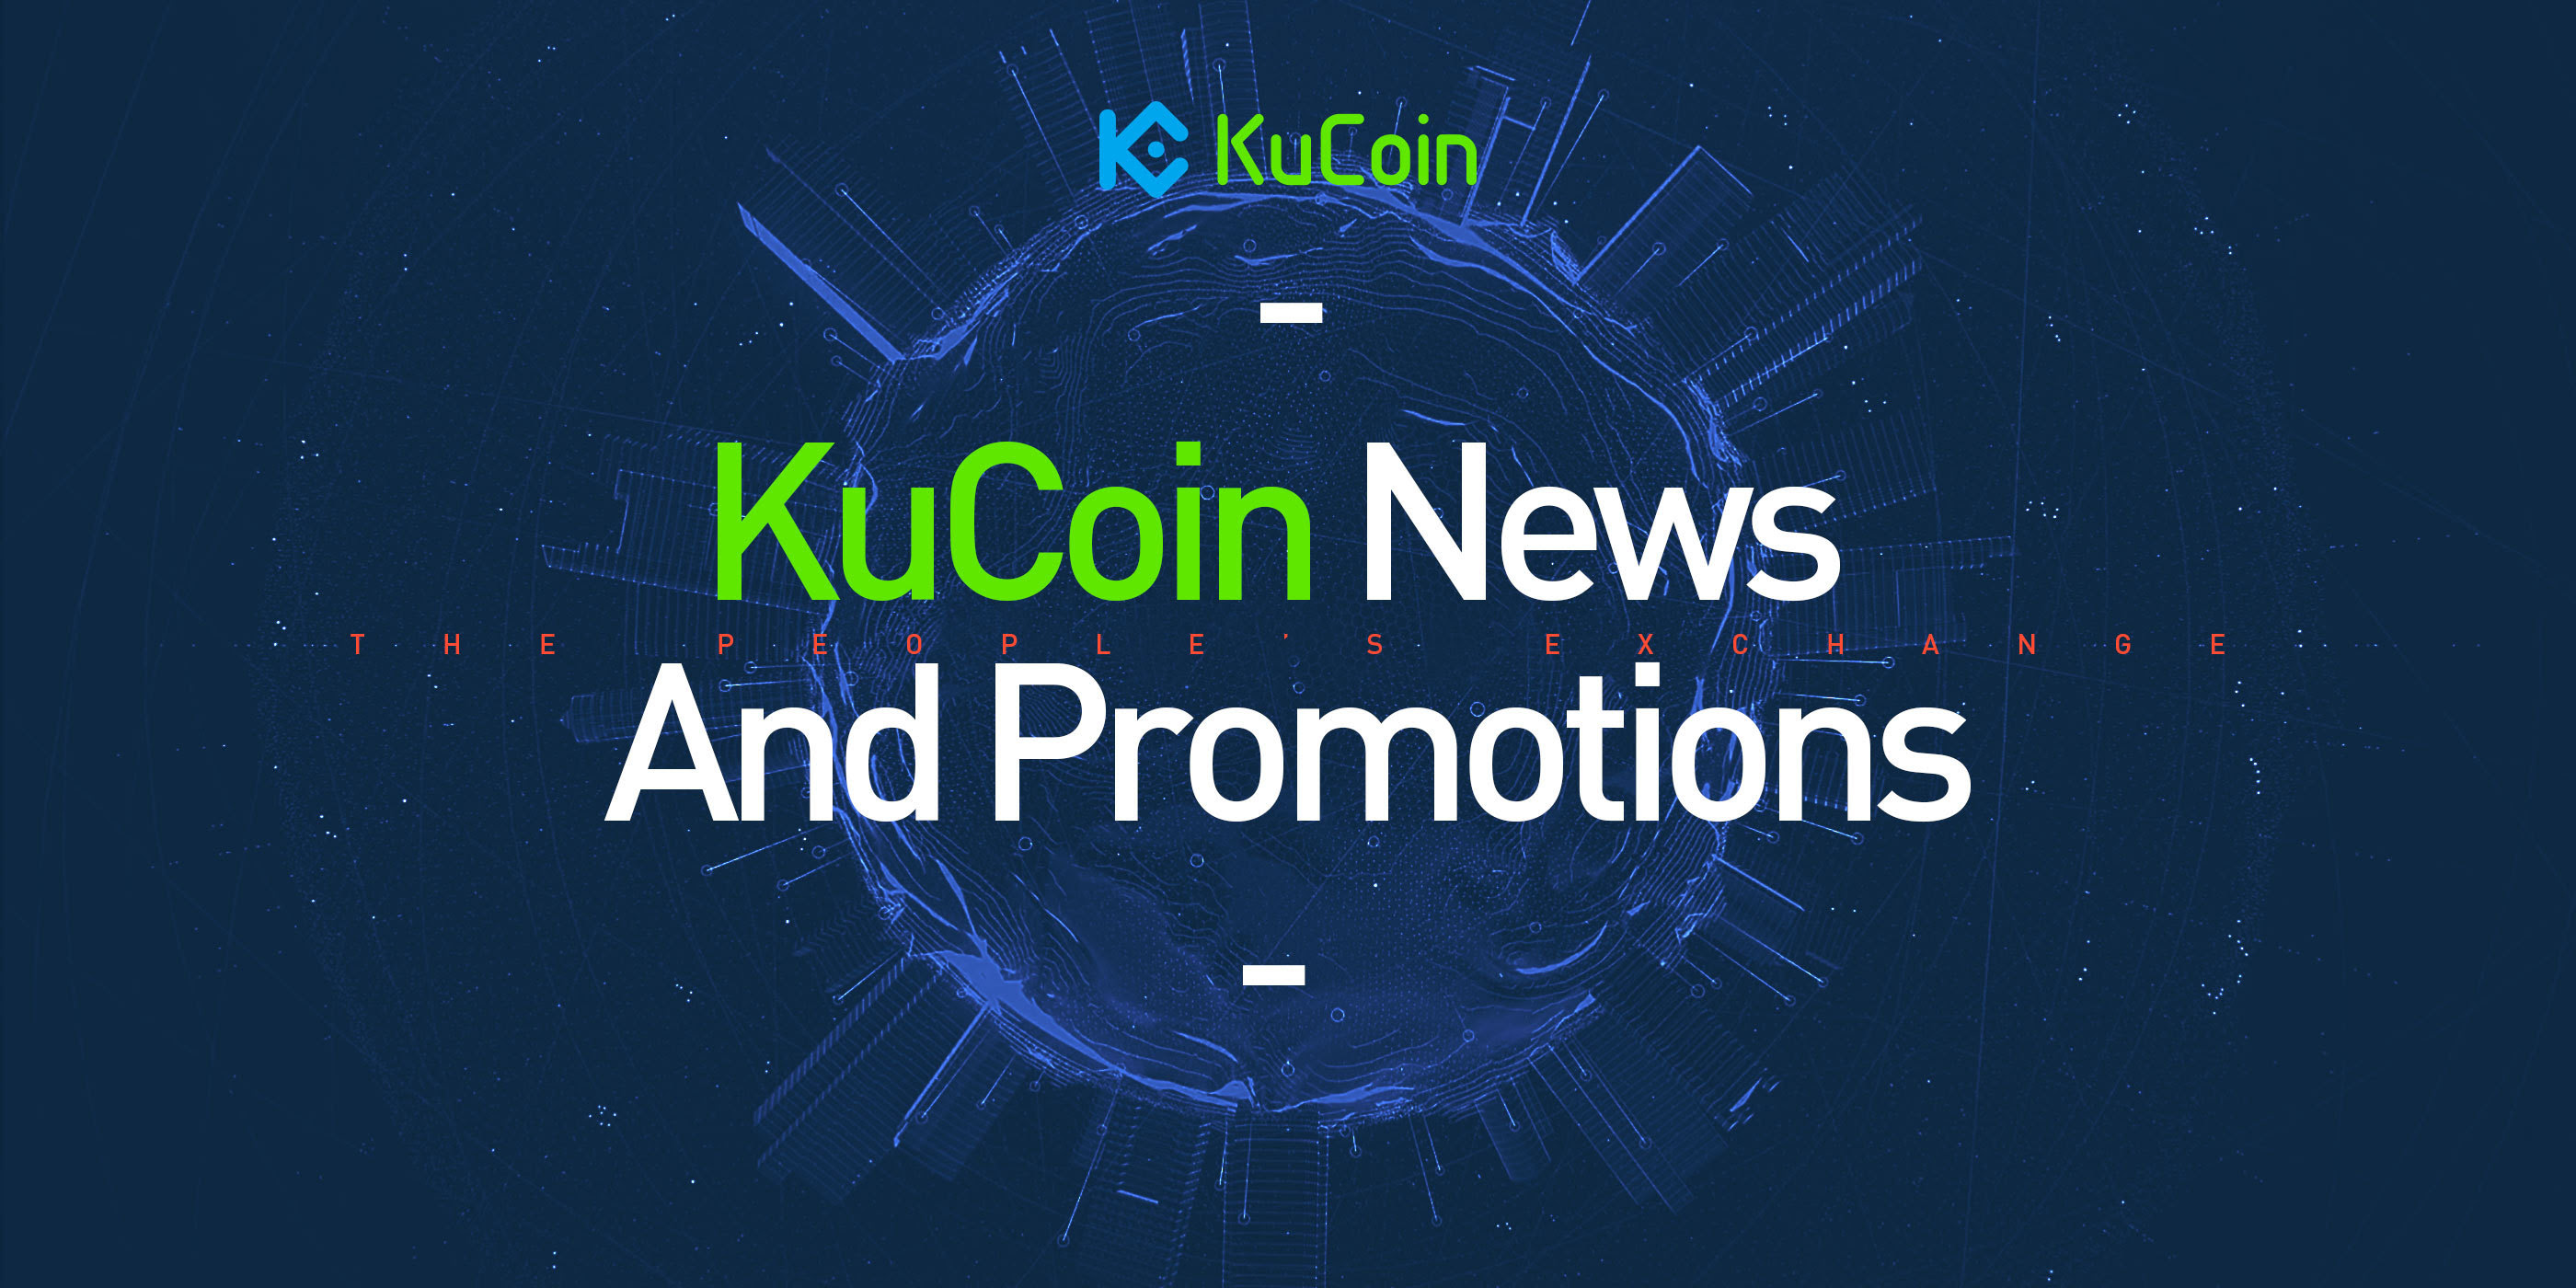 KuCoin News and Promotions